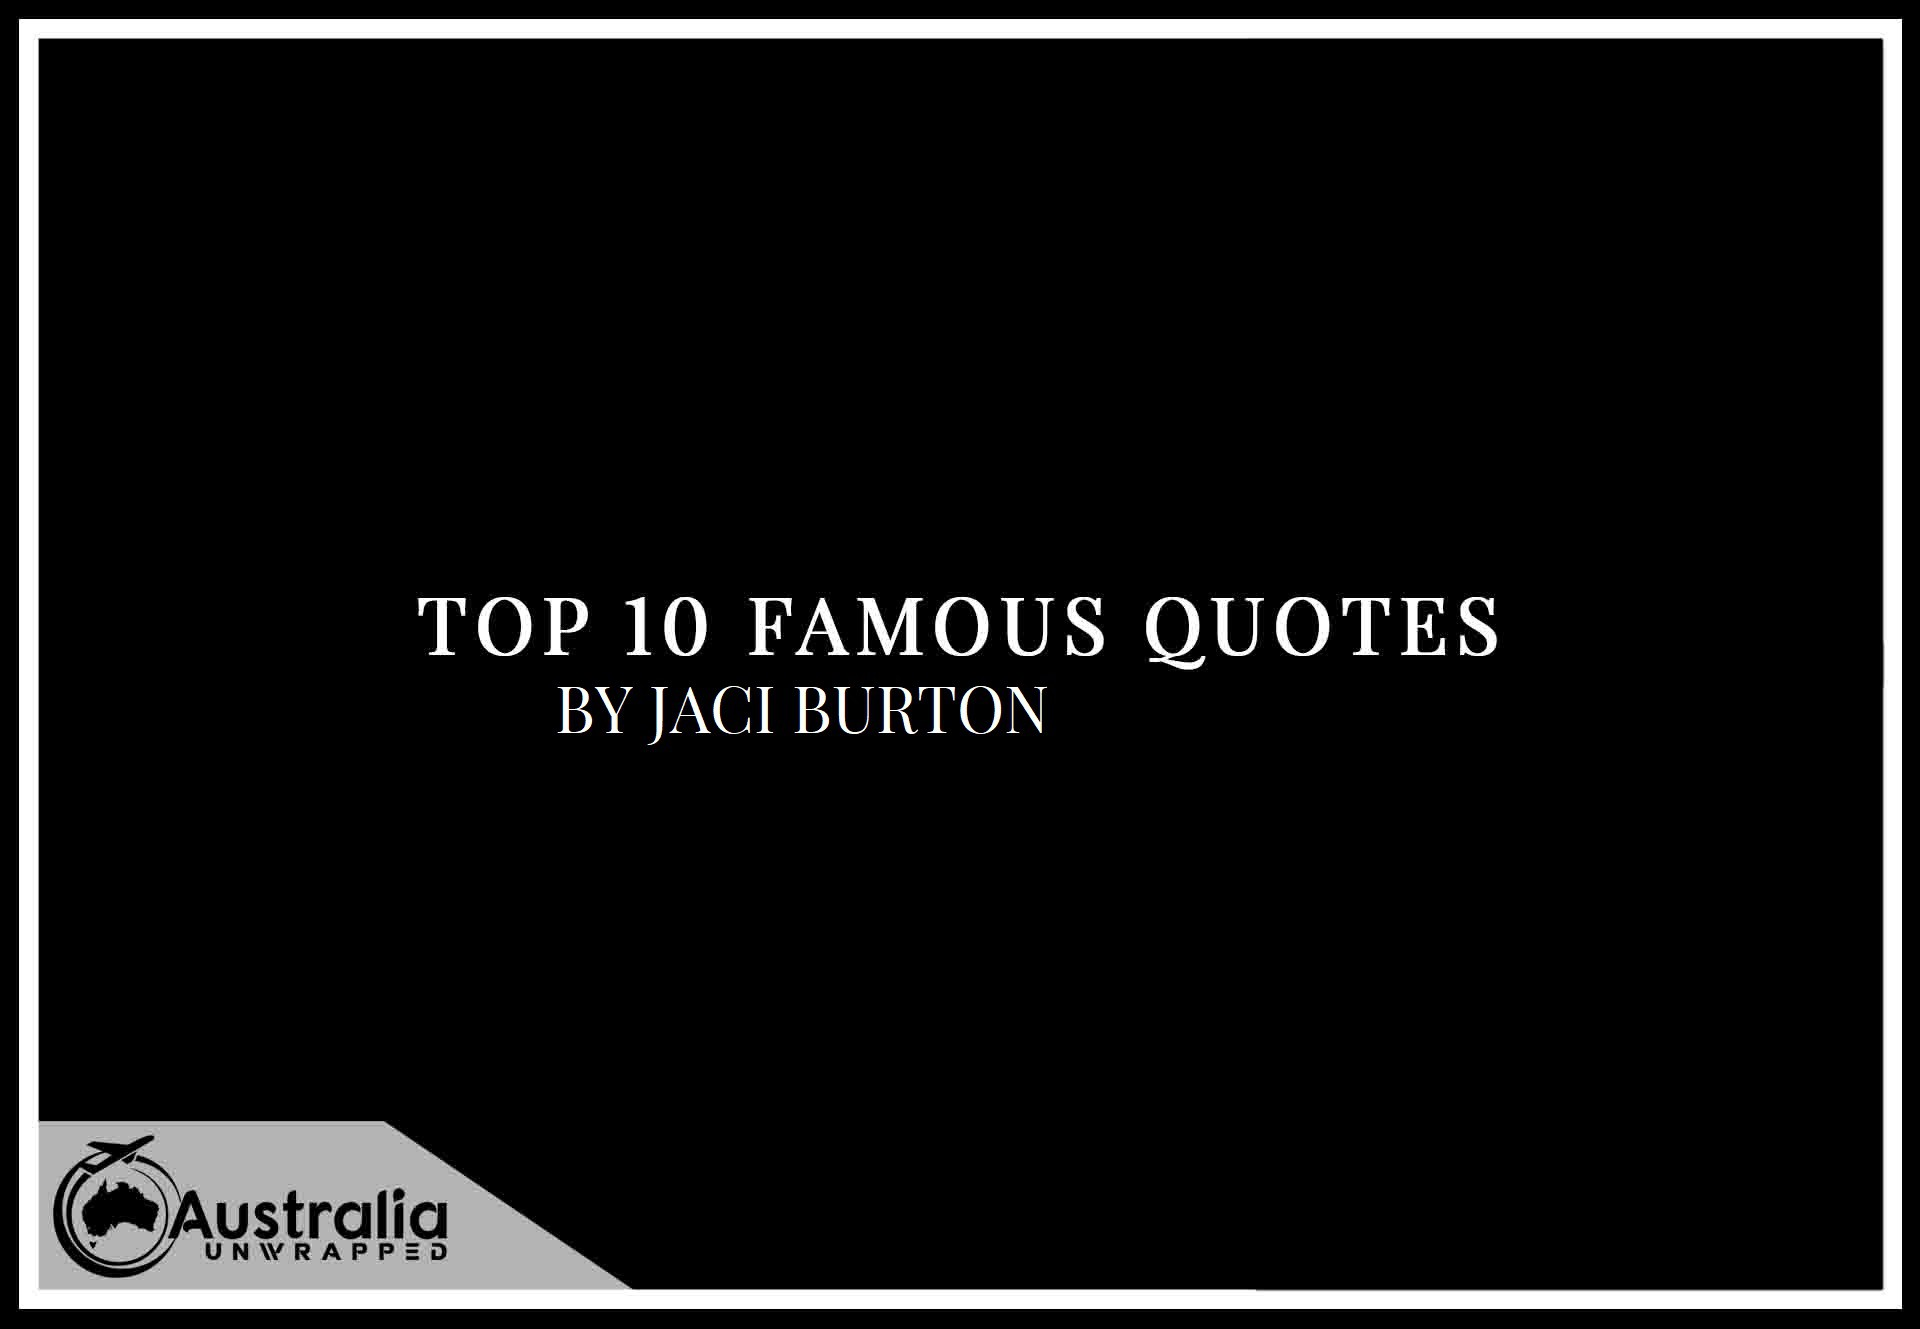 Top 10 Famous Quotes by Author Jaci Burton